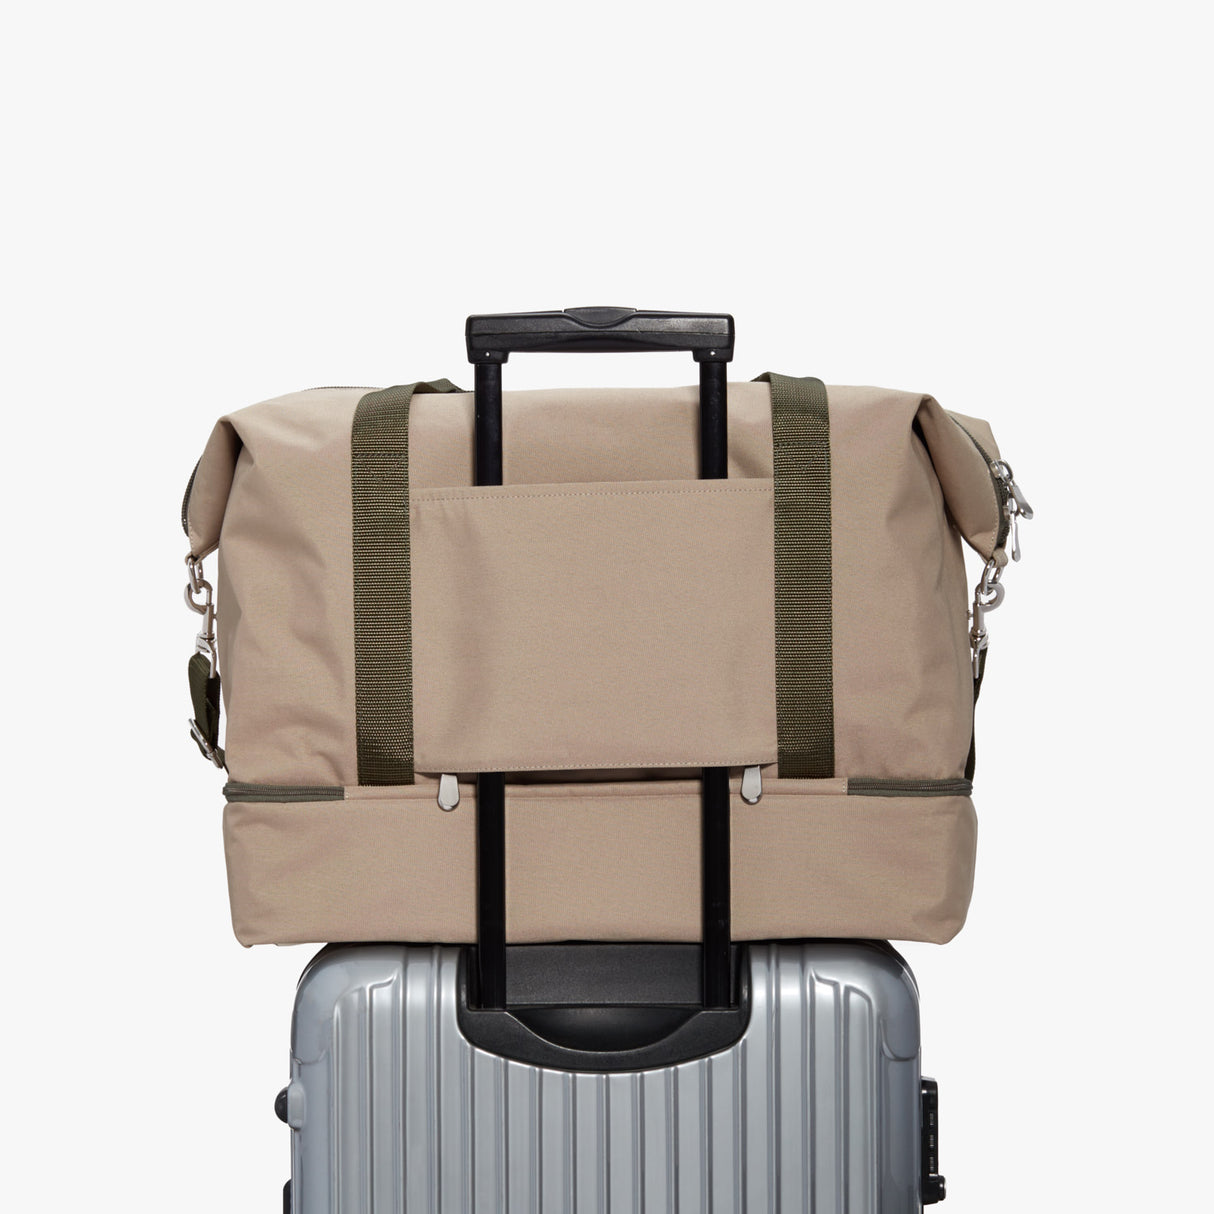 Luggage - Catalina Deluxe - 600D Recycled Poly - Tan / Silver / Green - Weekender - Lo & Sons